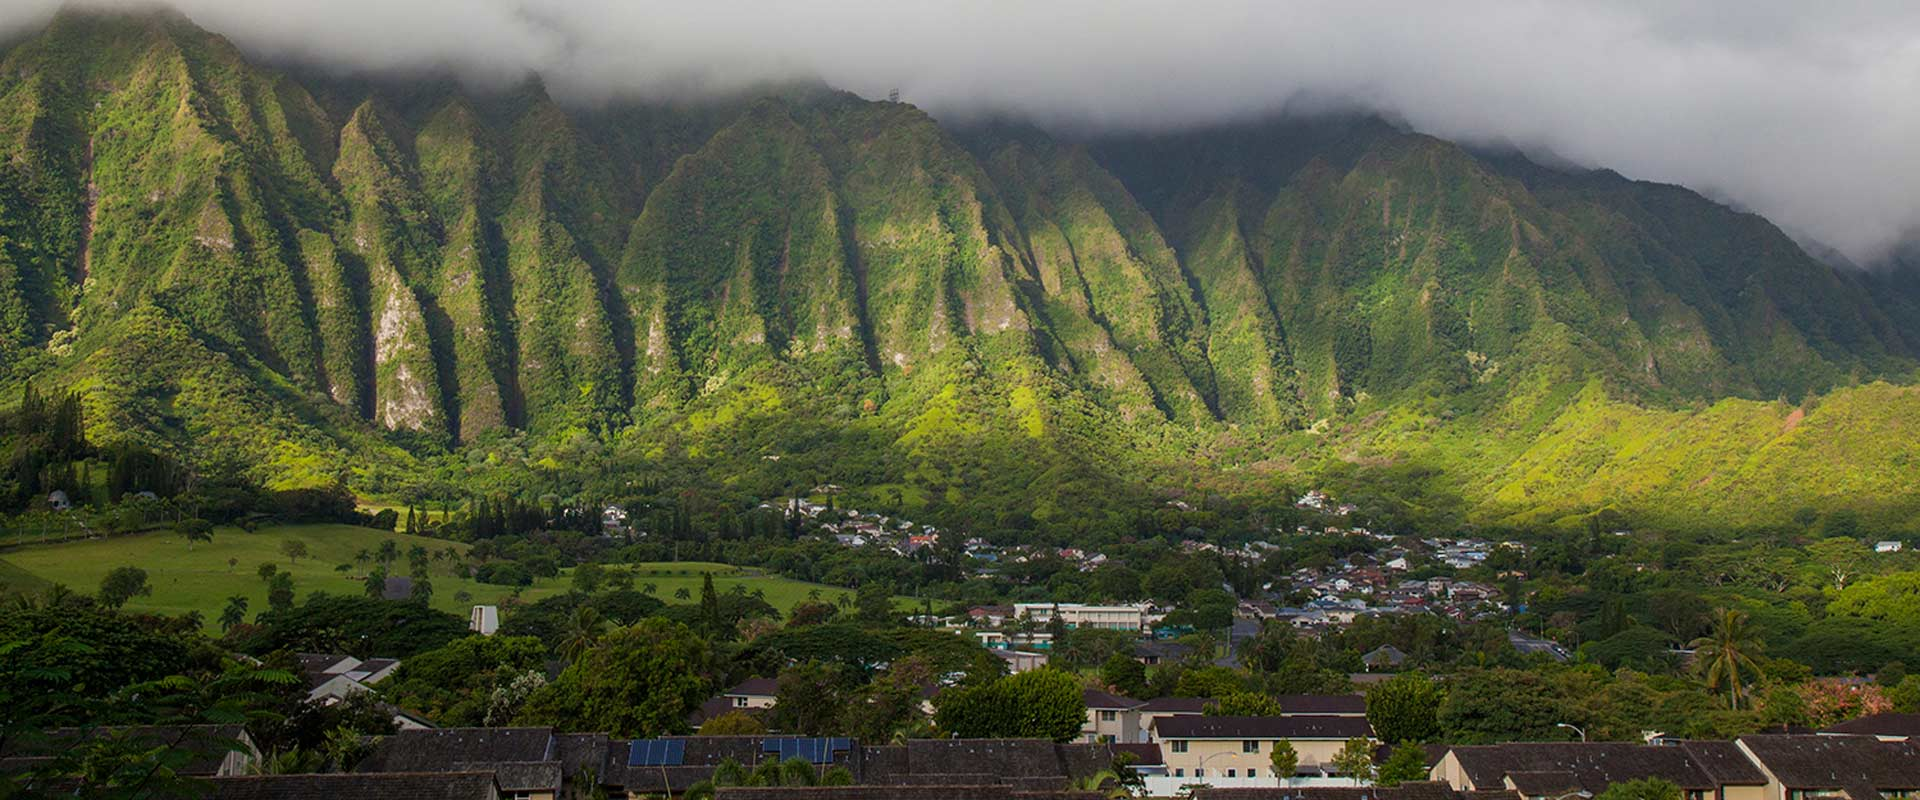 Buying or Selling Property in Kaneohe